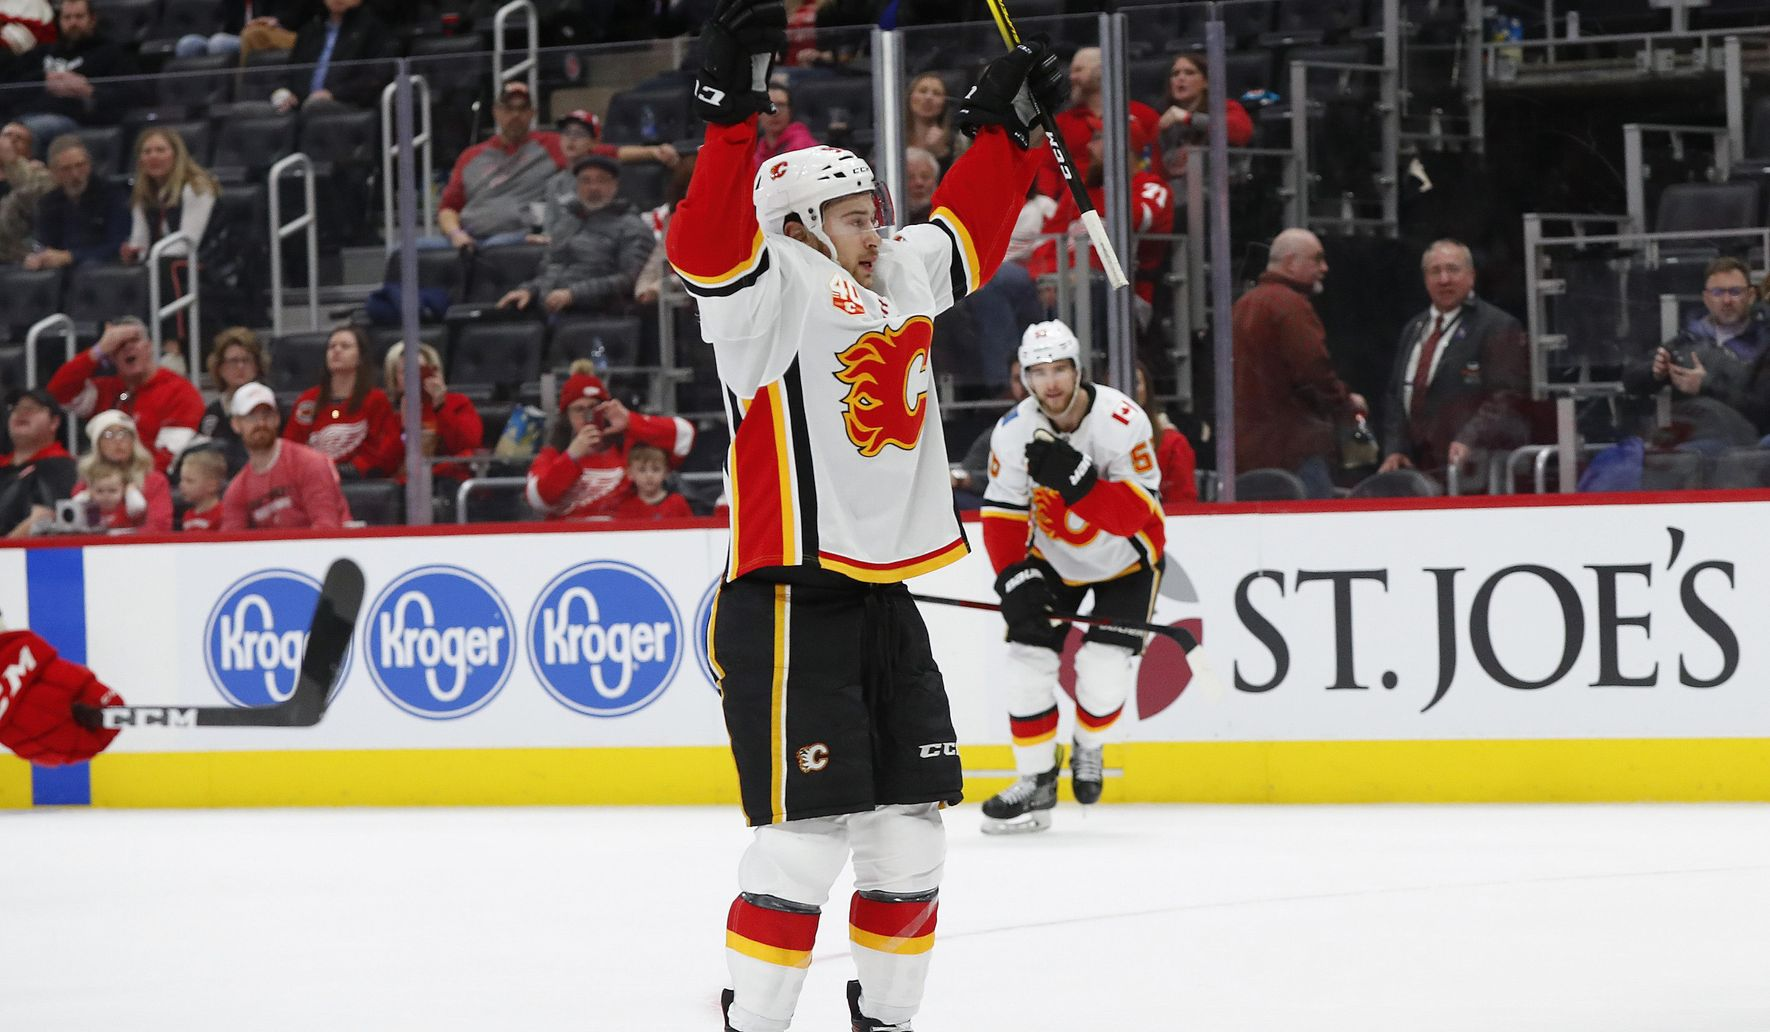 Flames_red_wings_hockey_72035_c0-181-4246-2656_s1770x1032